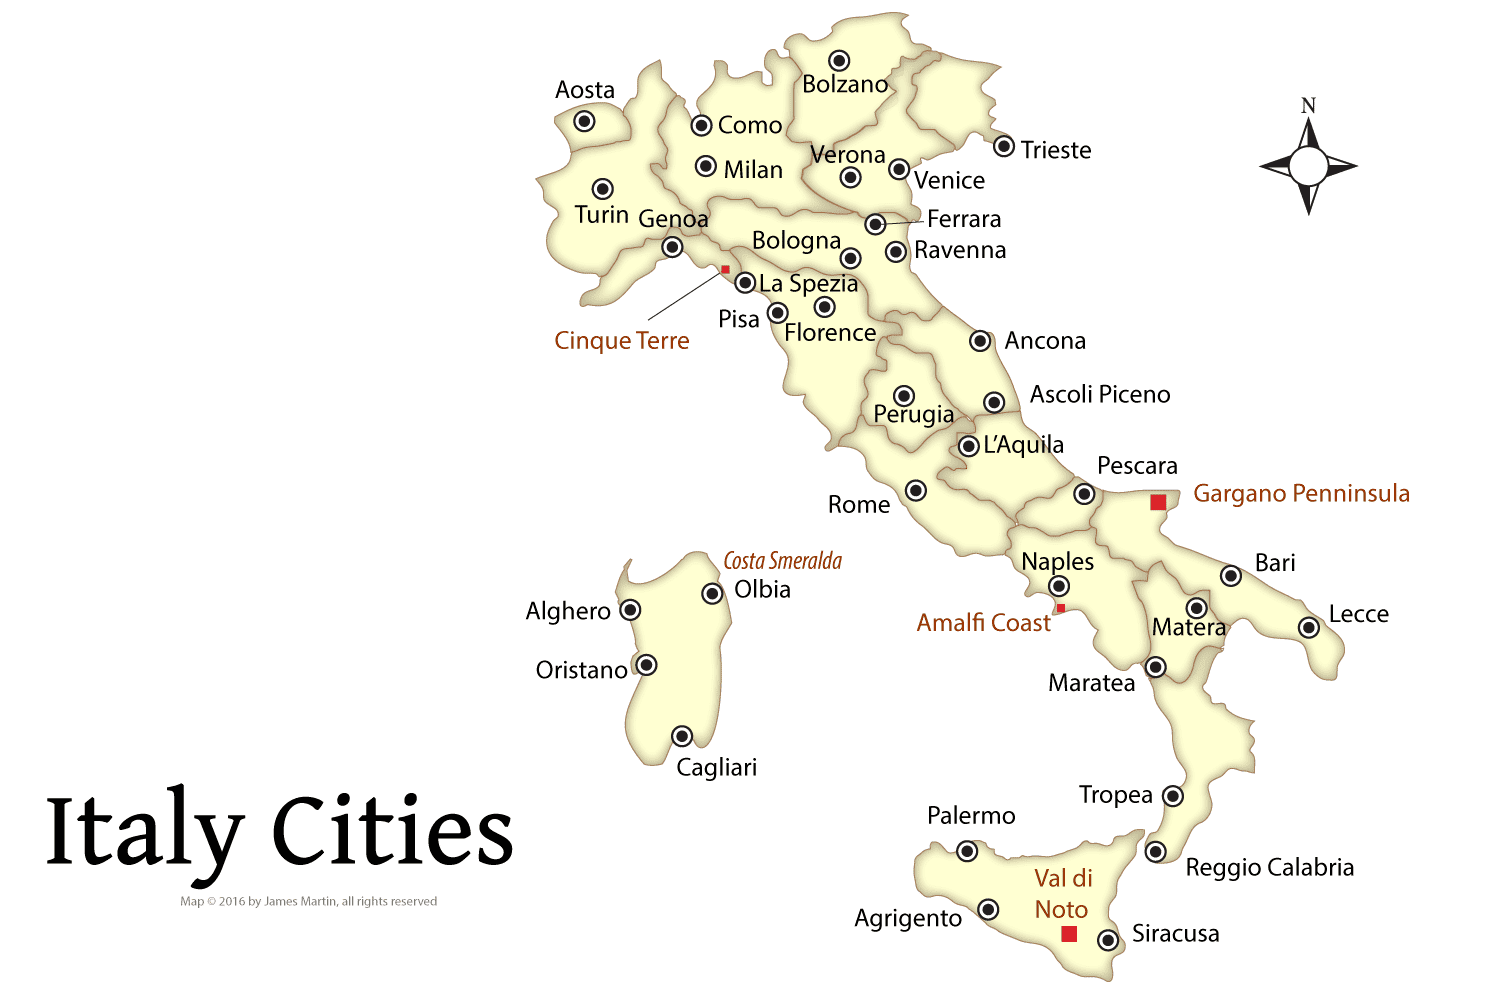 Map Of Italian Cities Planning Your Italian Vacation: Best Cities in Italy